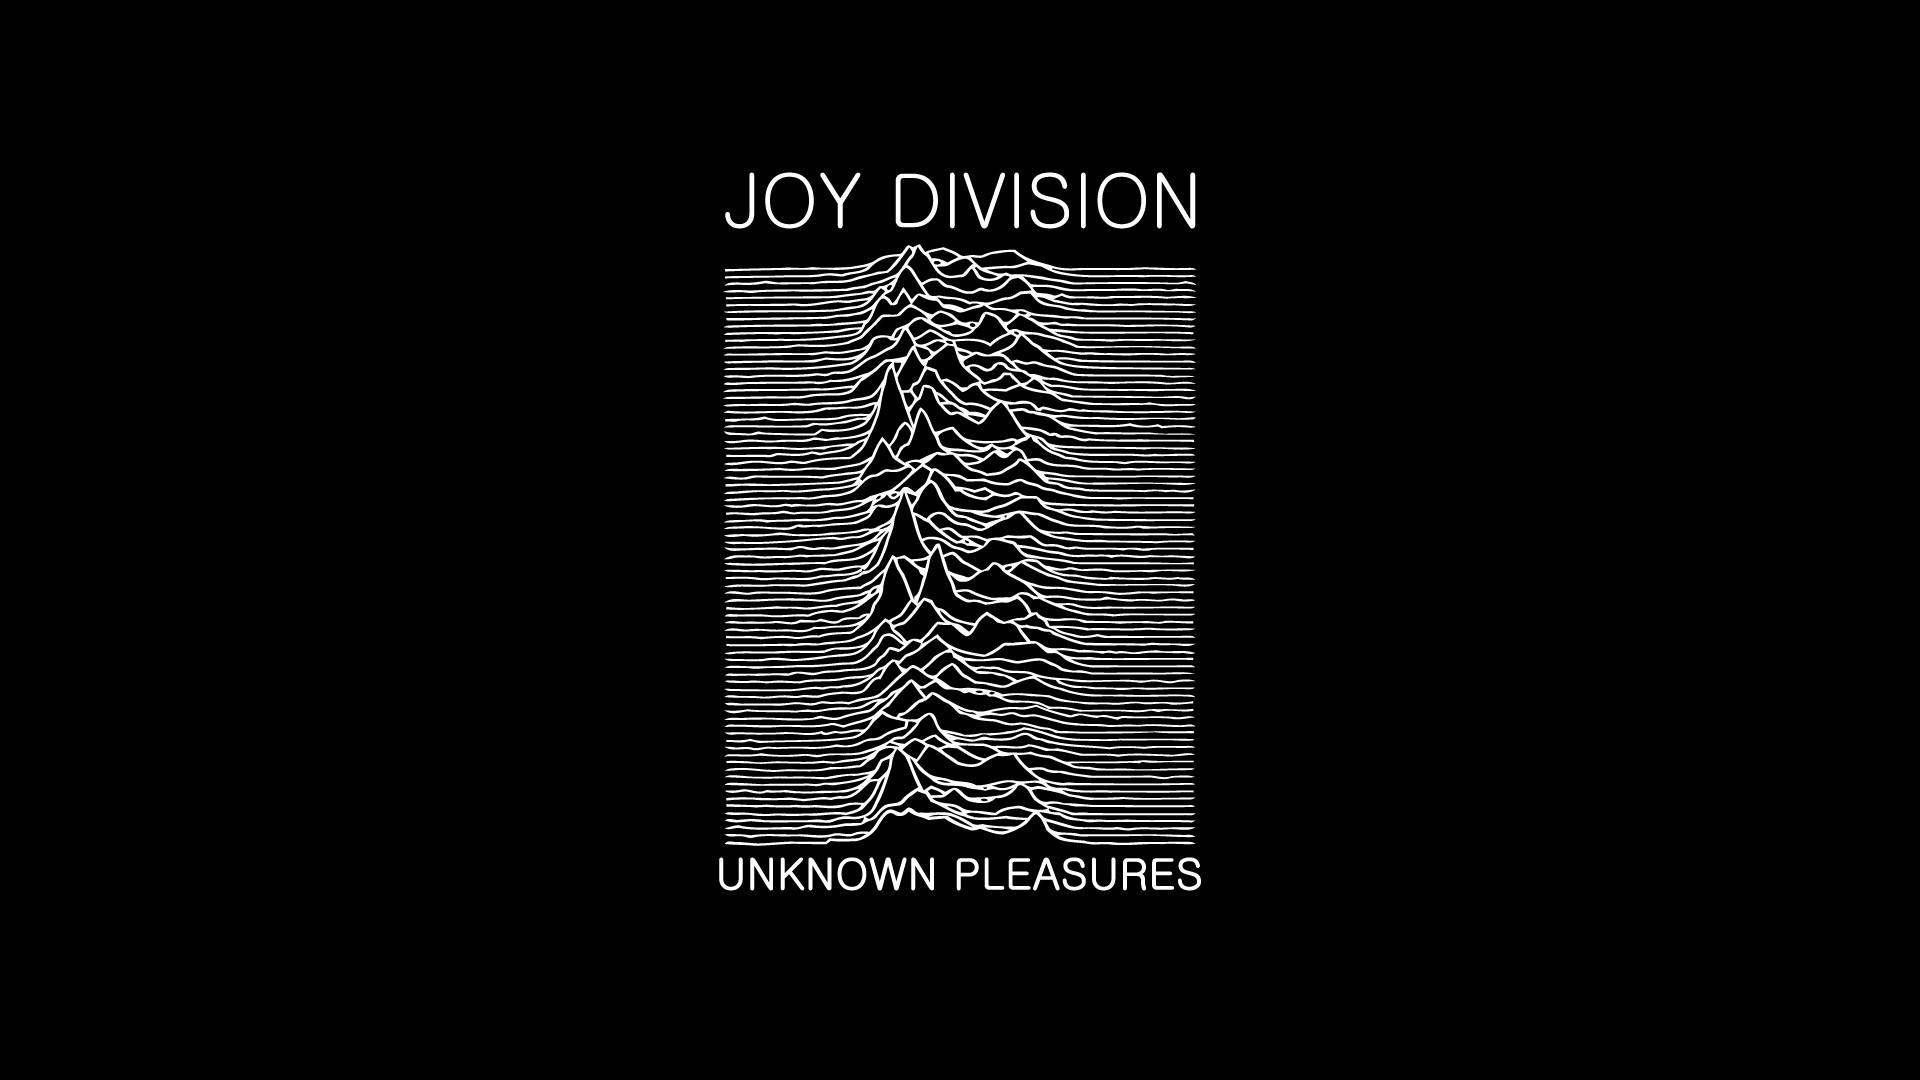 joy division images hd - photo #1